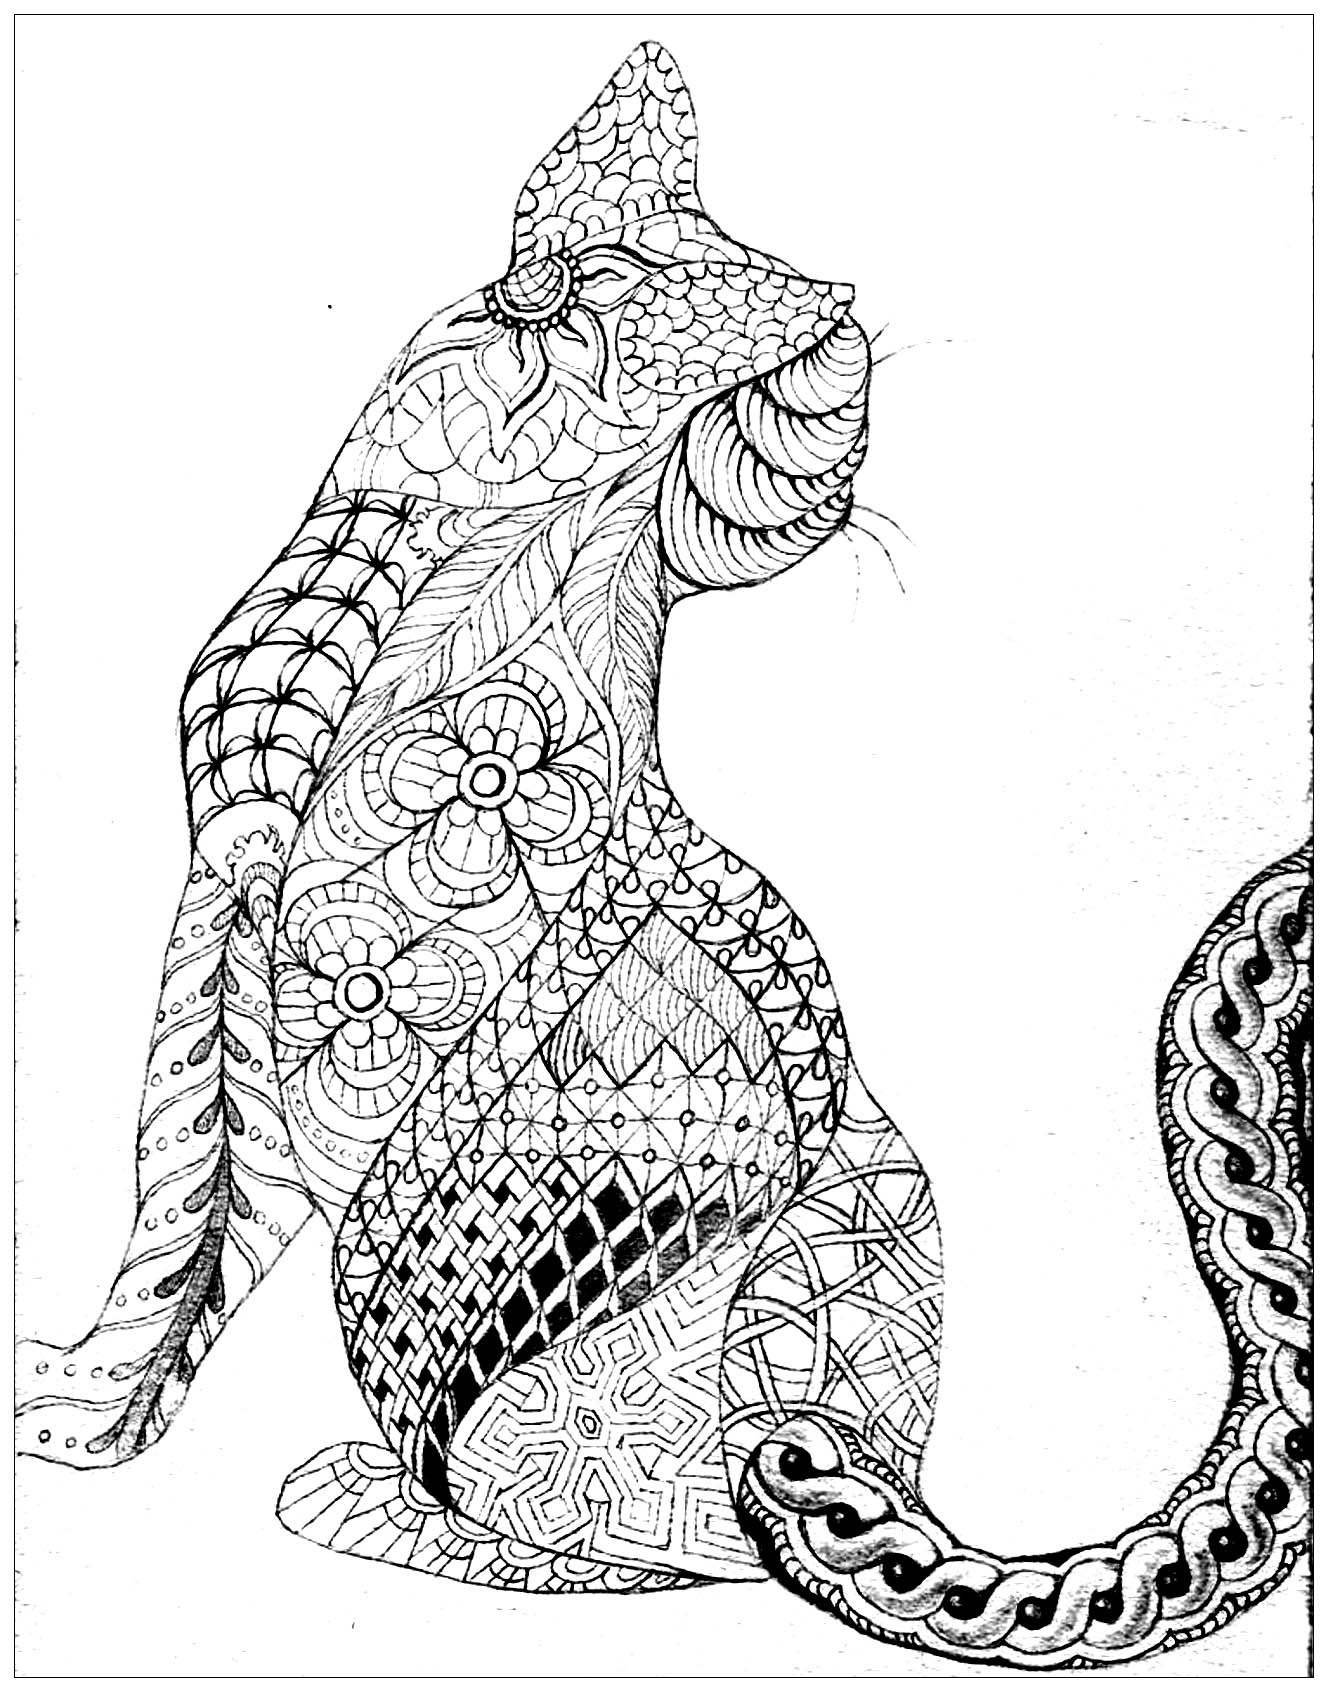 Cats coloring page to print and color for free : Zentangle cat